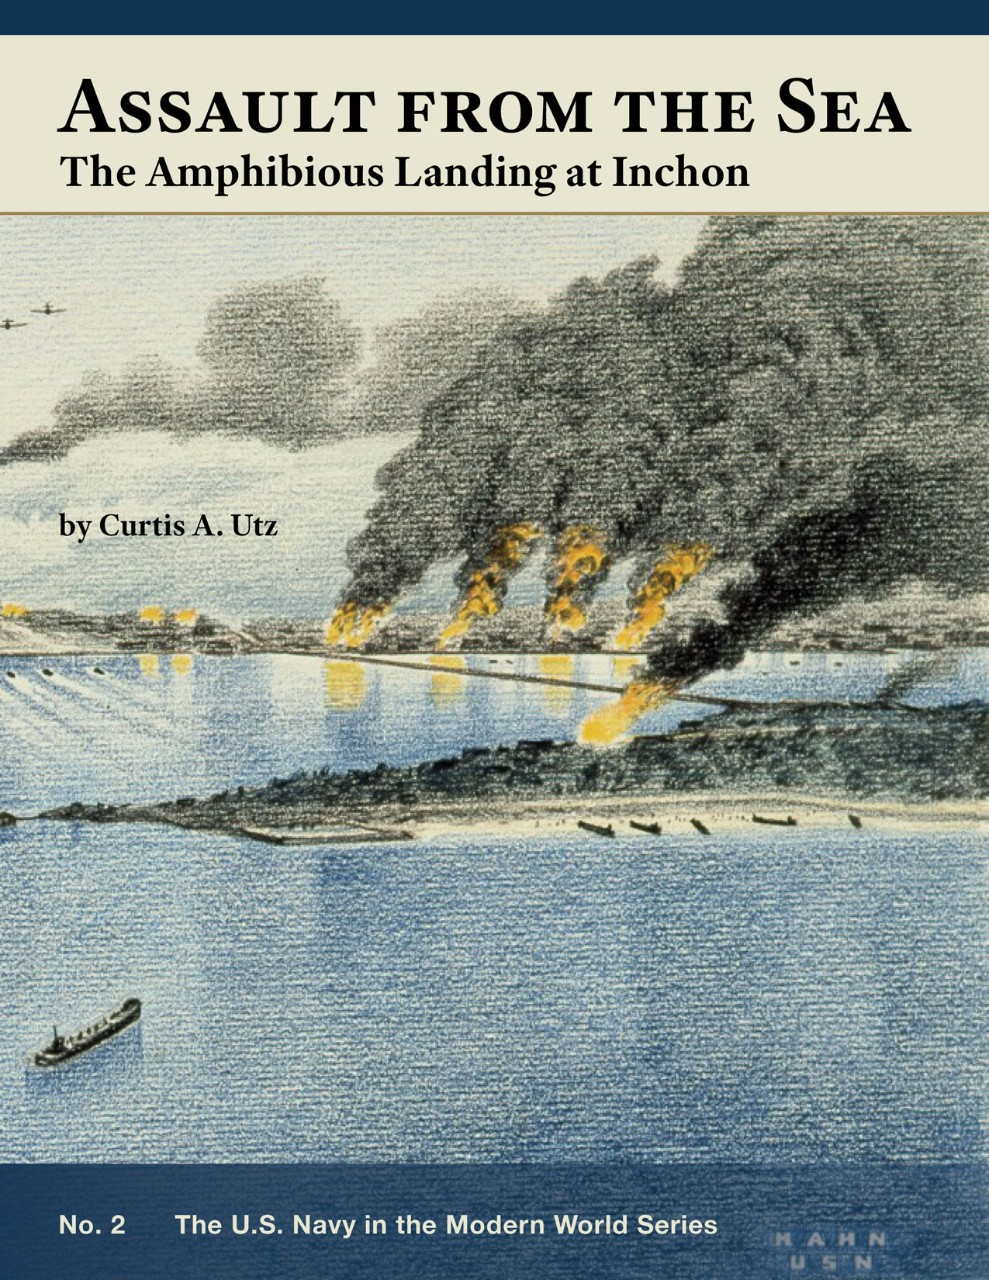 Assault from the Sea: The Amphibious Landing at Inchon